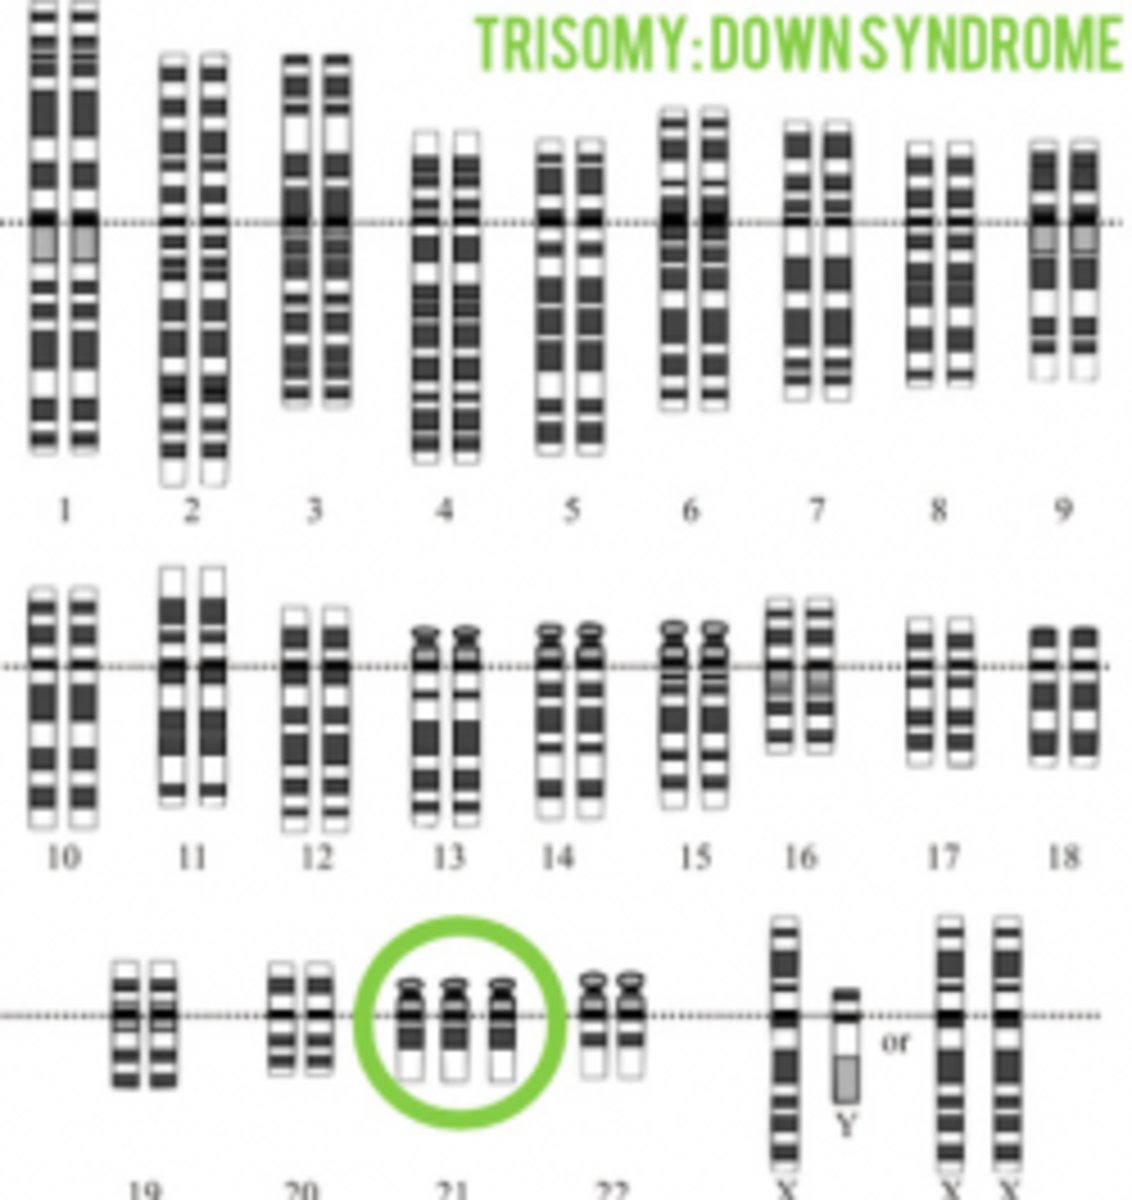 Karyotype Illustrating Trisomy of the 21st Chromosome